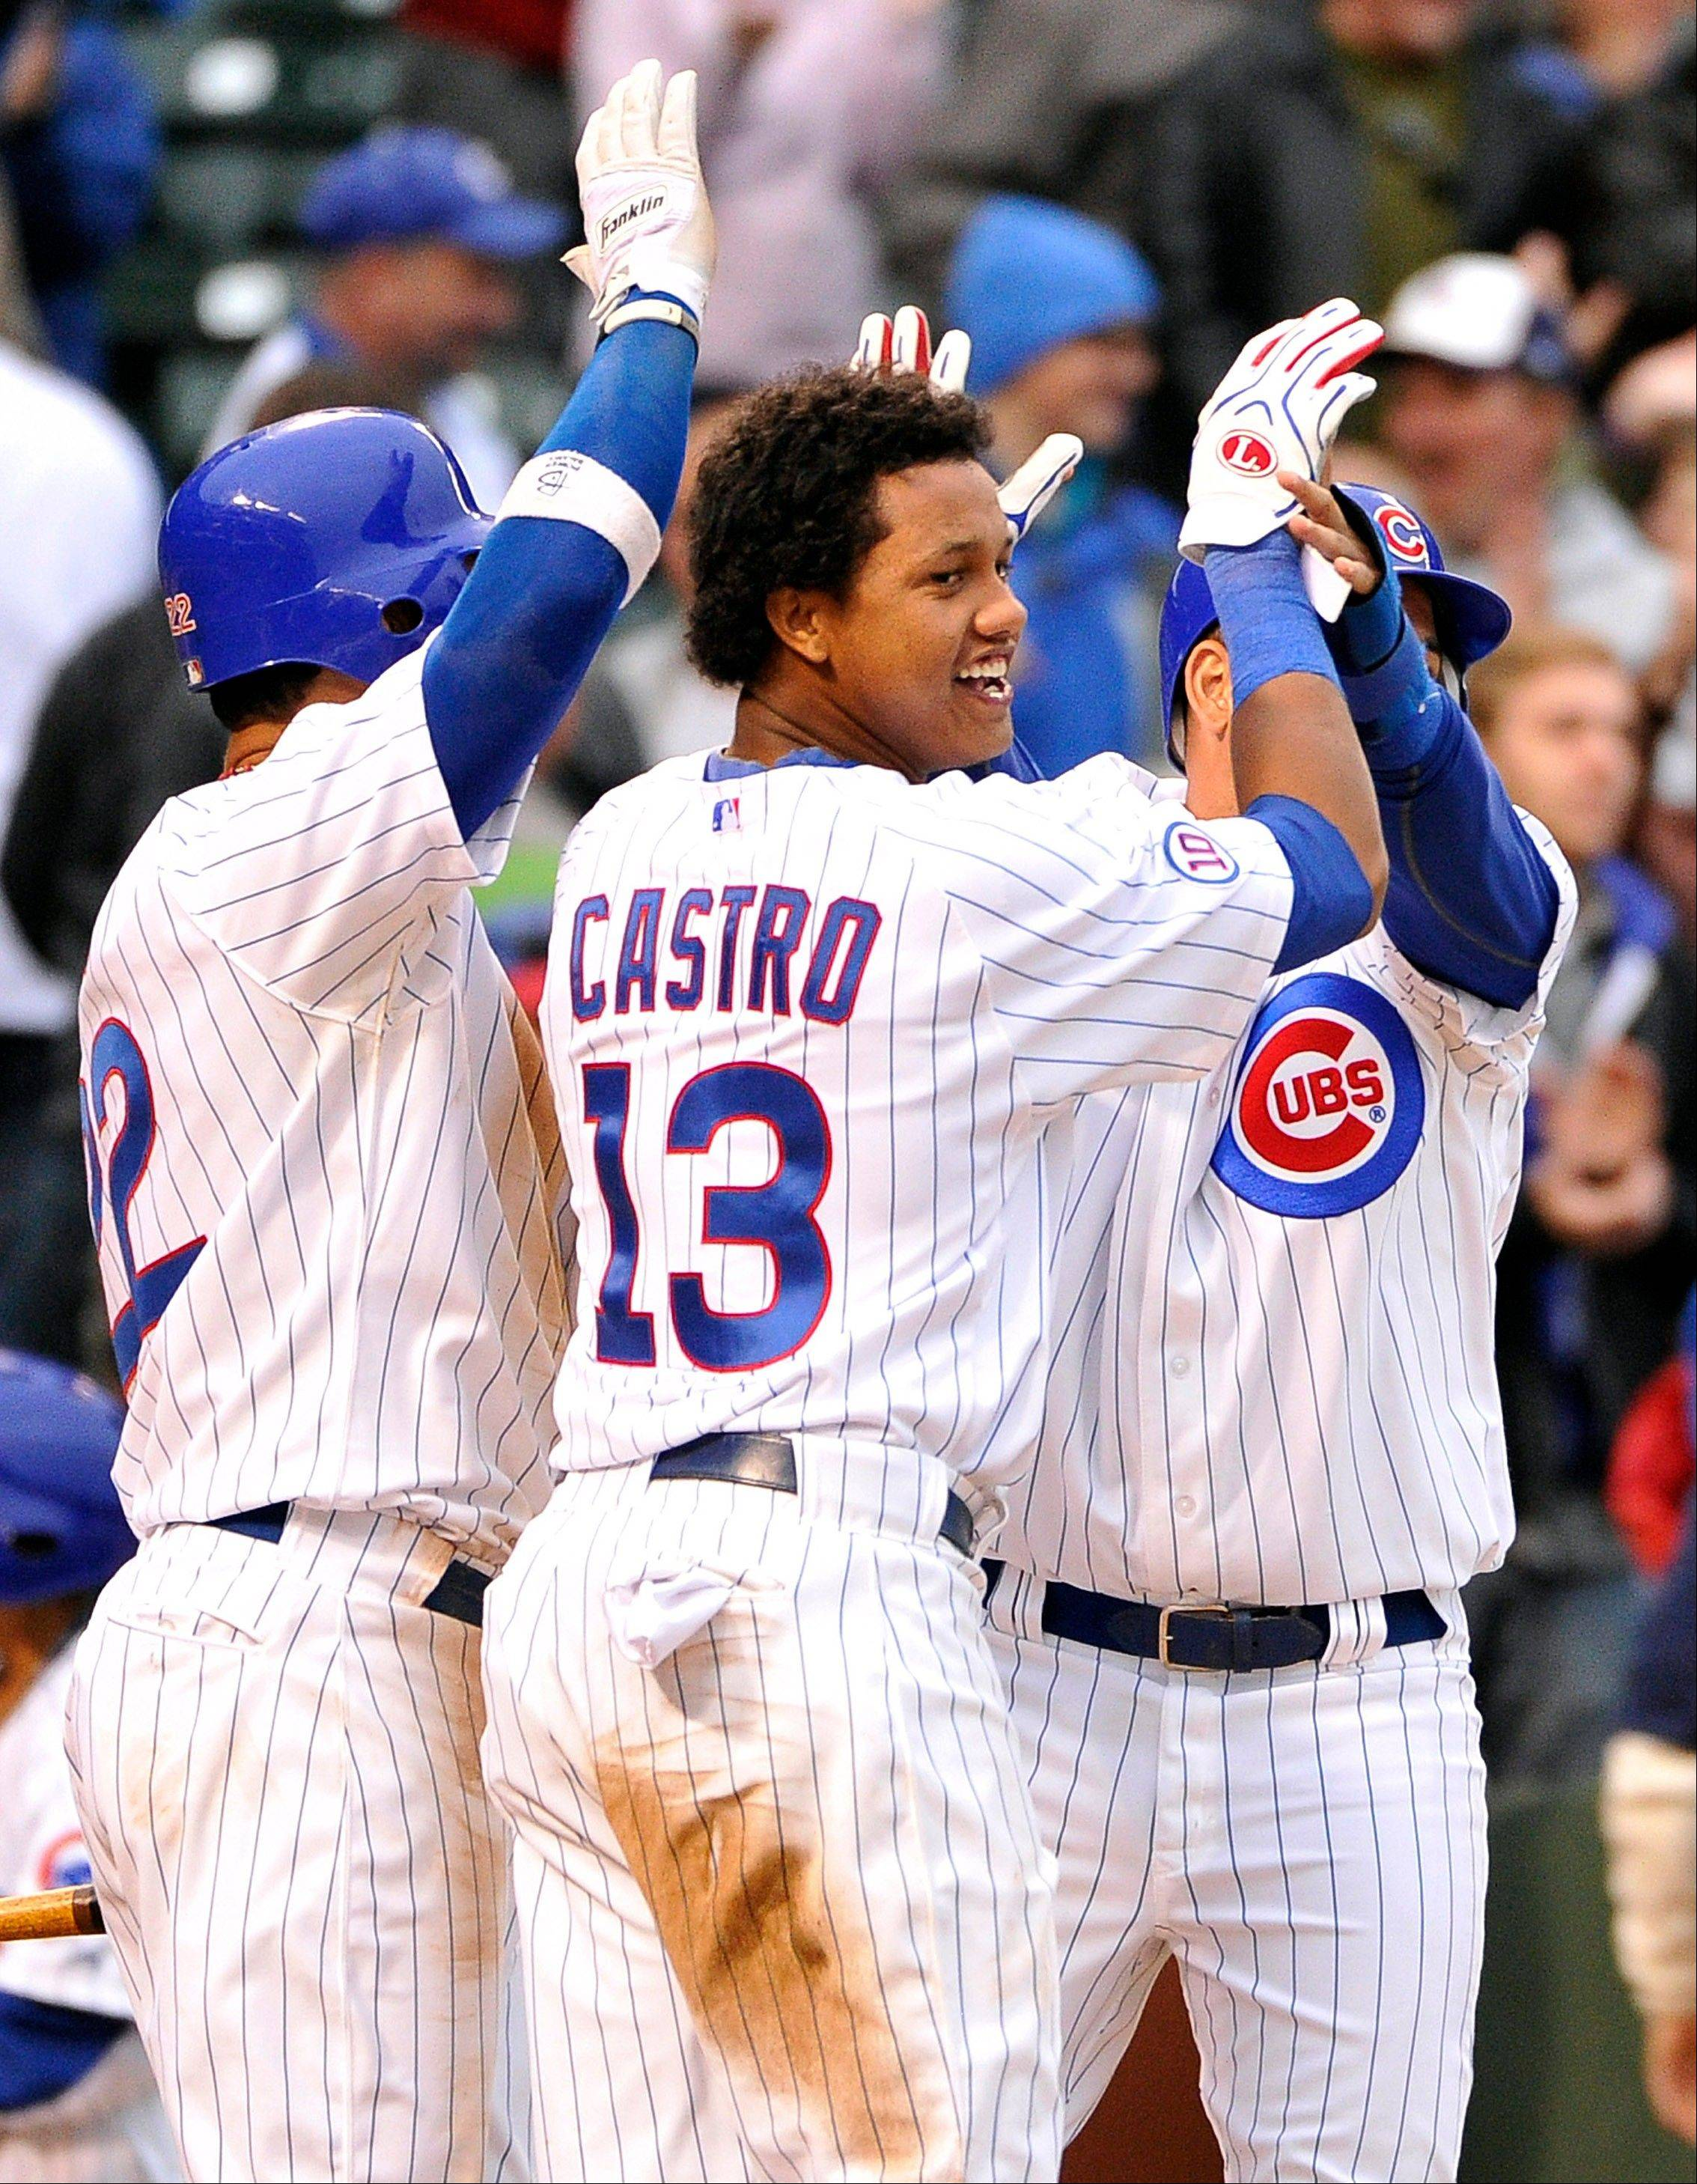 Carlos Pena, Starlin Castro and Aramis Ramirez celebrate their 4-3 win in 12 innings over the Houston Astros Friday at Wrigley Field.